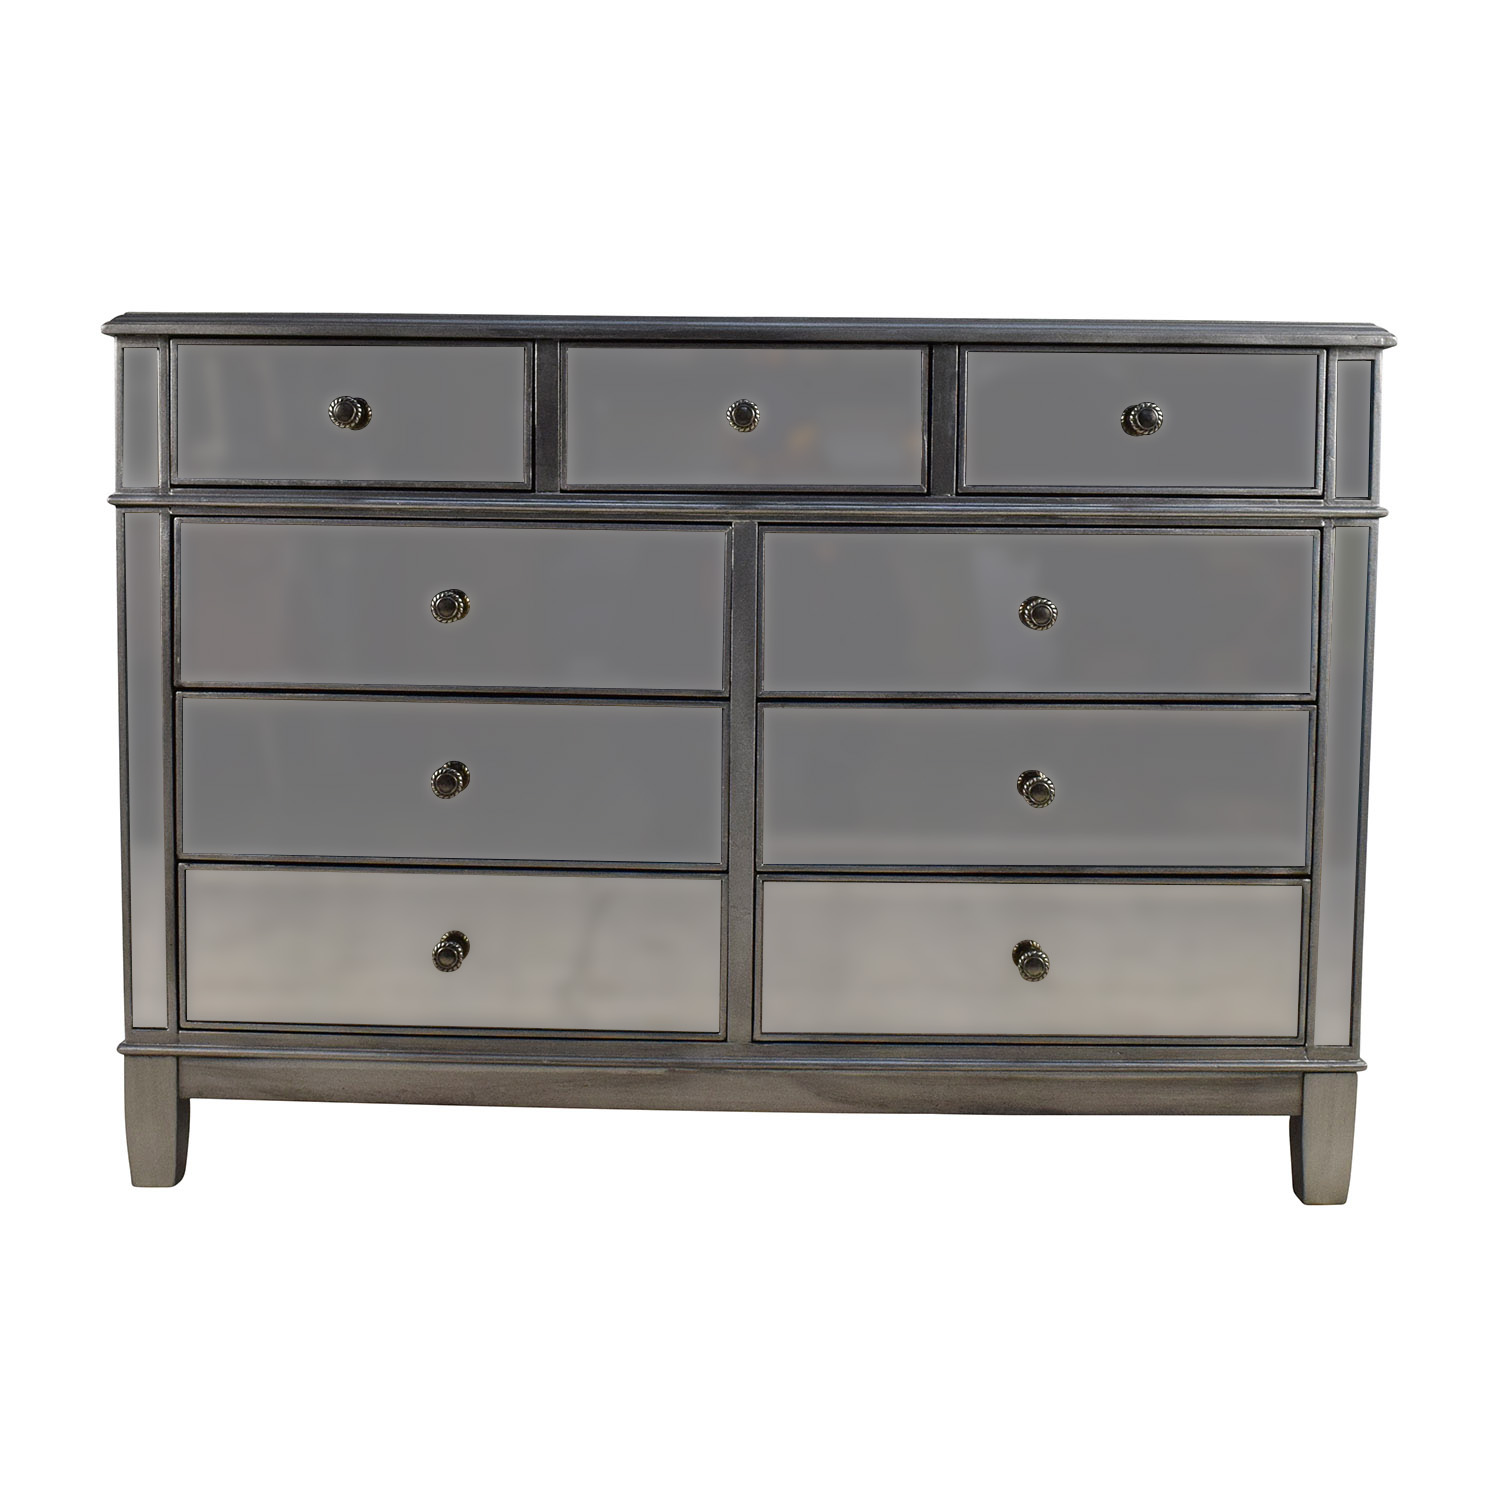 hayworth furniture collection. Pier 1 Hayworth Collection Mirrored Silver Dresser Second Hand Furniture